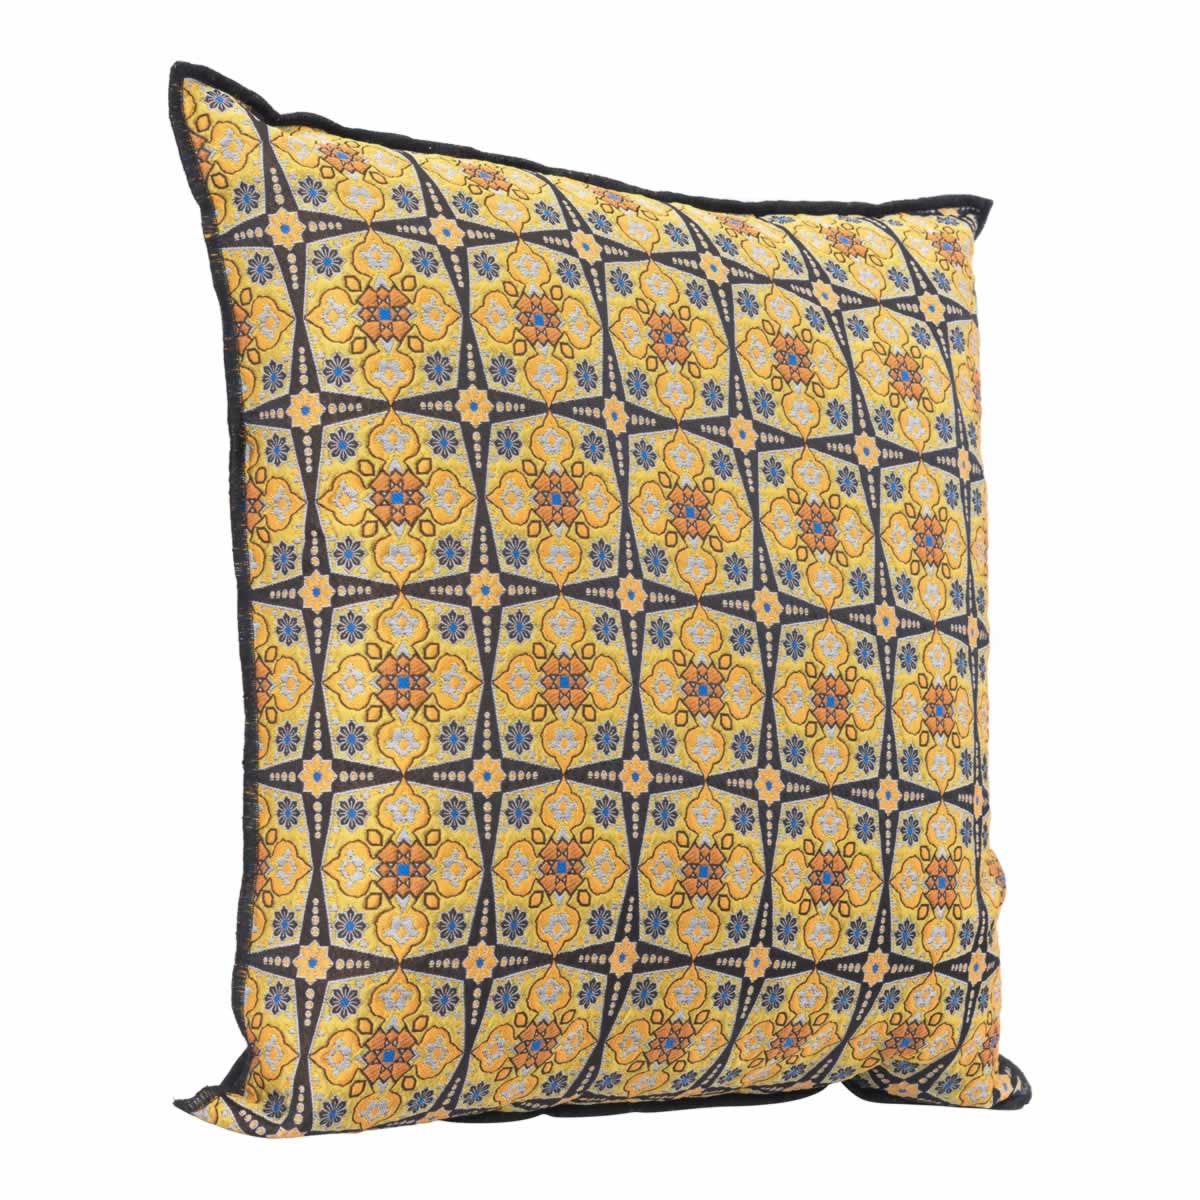 Zuo Splendor Pillow Yellow